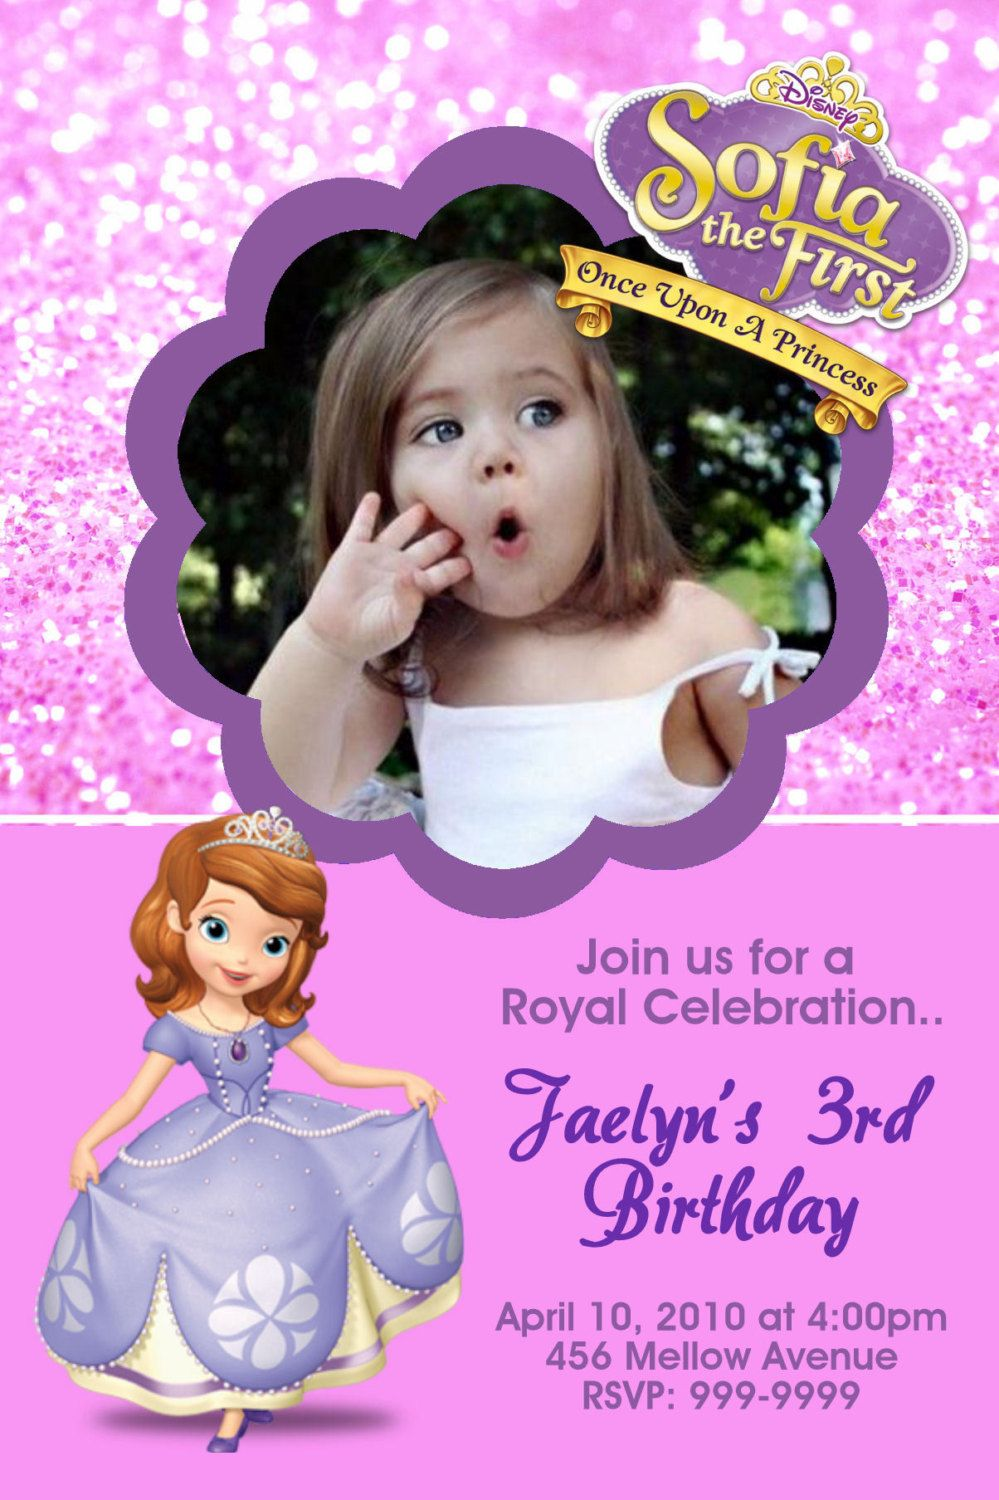 Sofia the First Birthday Party Invitations 24 HOUR by Mrsinvites